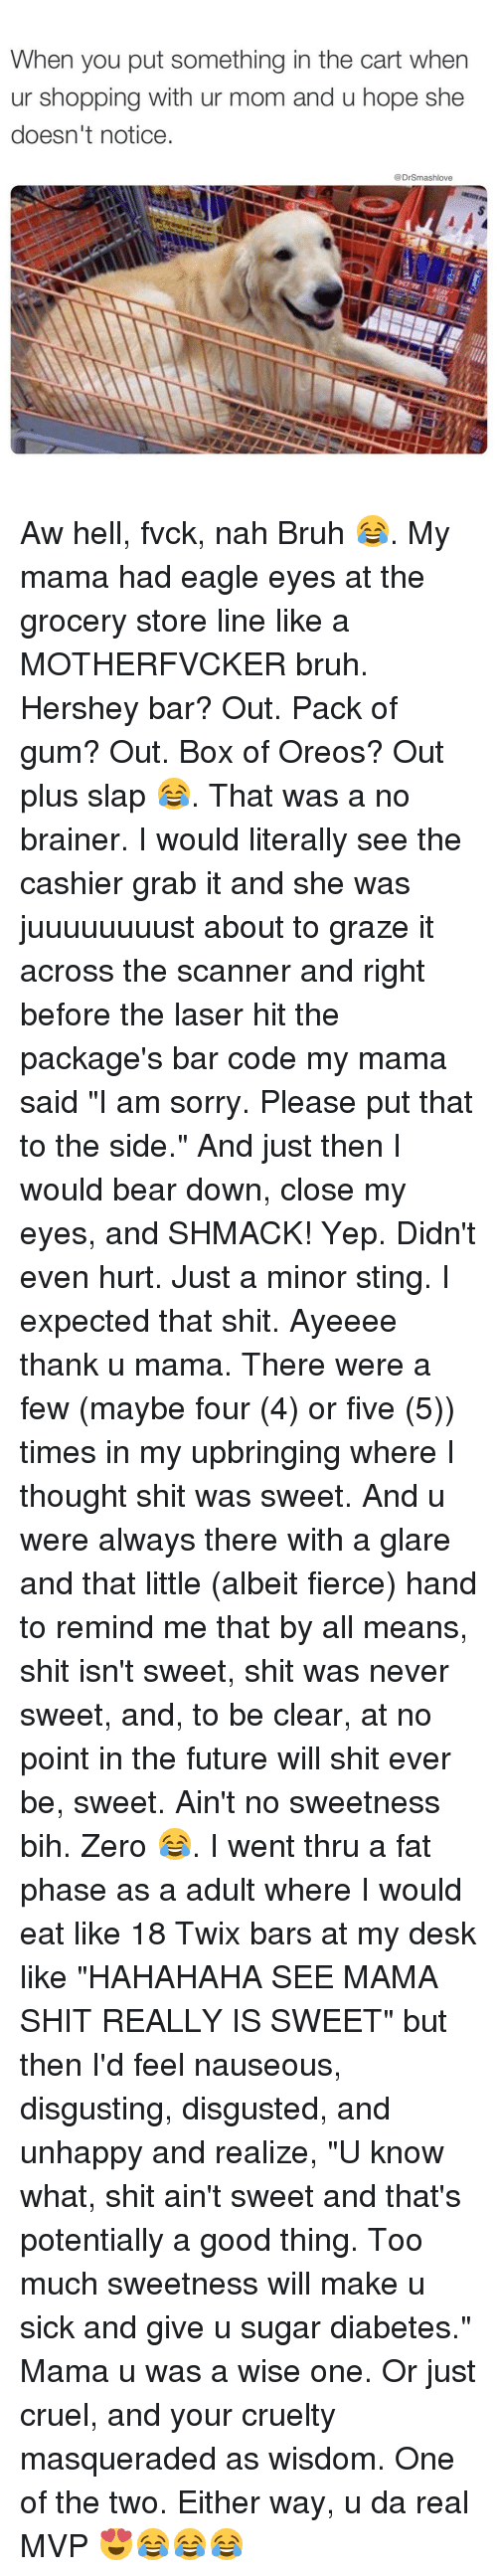 """Memes, Zero, and Desk: When you put something in the cart when  ur shopping with ur mom and u hope she  doesn't notice.  @Dr Smashlove Aw hell, fvck, nah Bruh 😂. My mama had eagle eyes at the grocery store line like a MOTHERFVCKER bruh. Hershey bar? Out. Pack of gum? Out. Box of Oreos? Out plus slap 😂. That was a no brainer. I would literally see the cashier grab it and she was juuuuuuuust about to graze it across the scanner and right before the laser hit the package's bar code my mama said """"I am sorry. Please put that to the side."""" And just then I would bear down, close my eyes, and SHMACK! Yep. Didn't even hurt. Just a minor sting. I expected that shit. Ayeeee thank u mama. There were a few (maybe four (4) or five (5)) times in my upbringing where I thought shit was sweet. And u were always there with a glare and that little (albeit fierce) hand to remind me that by all means, shit isn't sweet, shit was never sweet, and, to be clear, at no point in the future will shit ever be, sweet. Ain't no sweetness bih. Zero 😂. I went thru a fat phase as a adult where I would eat like 18 Twix bars at my desk like """"HAHAHAHA SEE MAMA SHIT REALLY IS SWEET"""" but then I'd feel nauseous, disgusting, disgusted, and unhappy and realize, """"U know what, shit ain't sweet and that's potentially a good thing. Too much sweetness will make u sick and give u sugar diabetes."""" Mama u was a wise one. Or just cruel, and your cruelty masqueraded as wisdom. One of the two. Either way, u da real MVP 😍😂😂😂"""